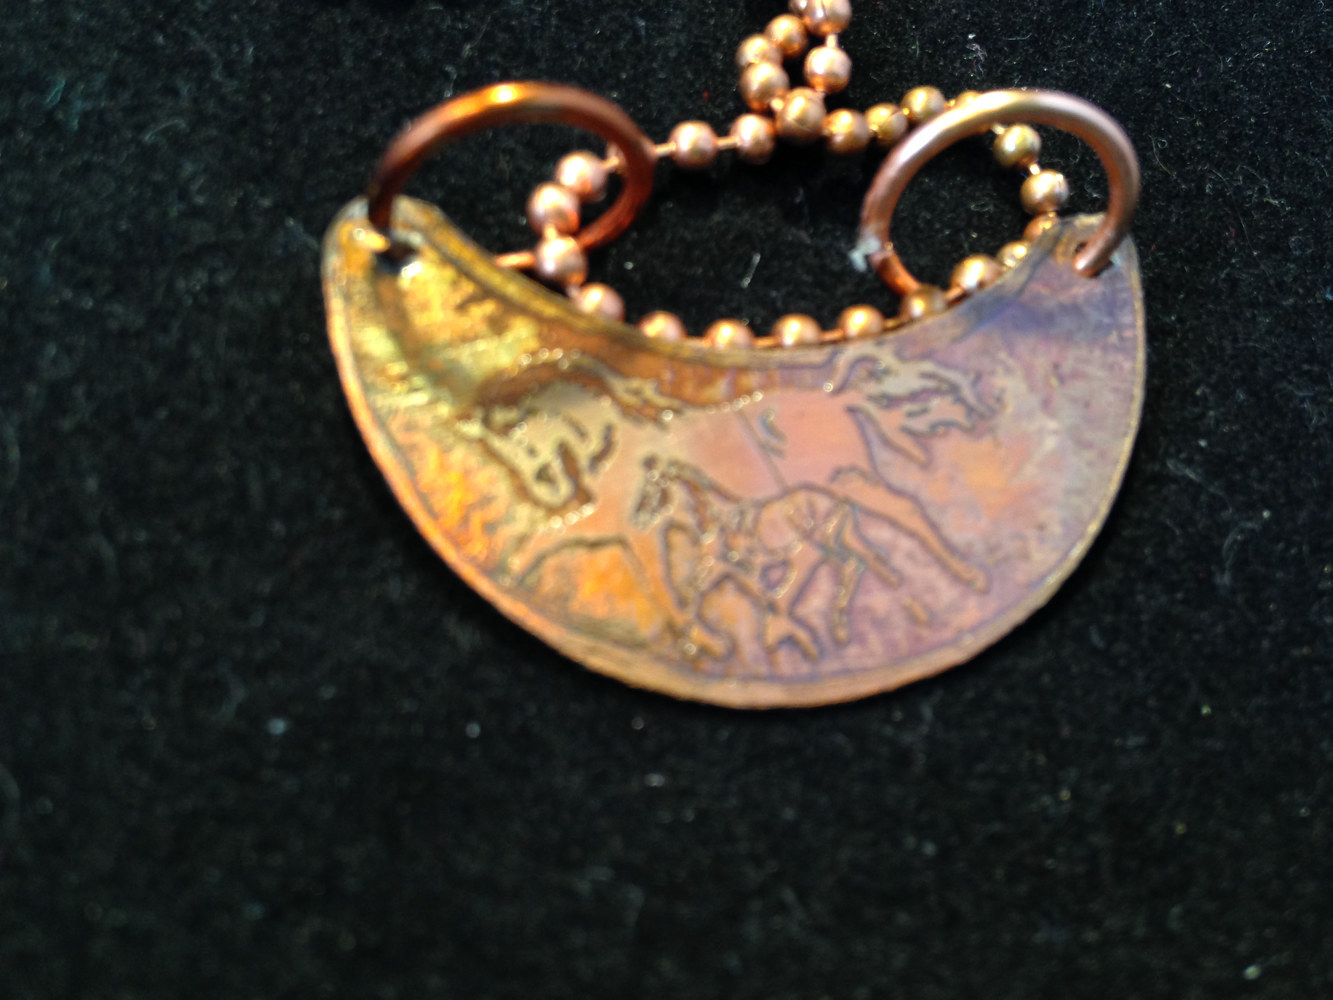 Horse and Pony Etched Copper Pendant on Ball ChainIMG_6427 by Renee Hennessy